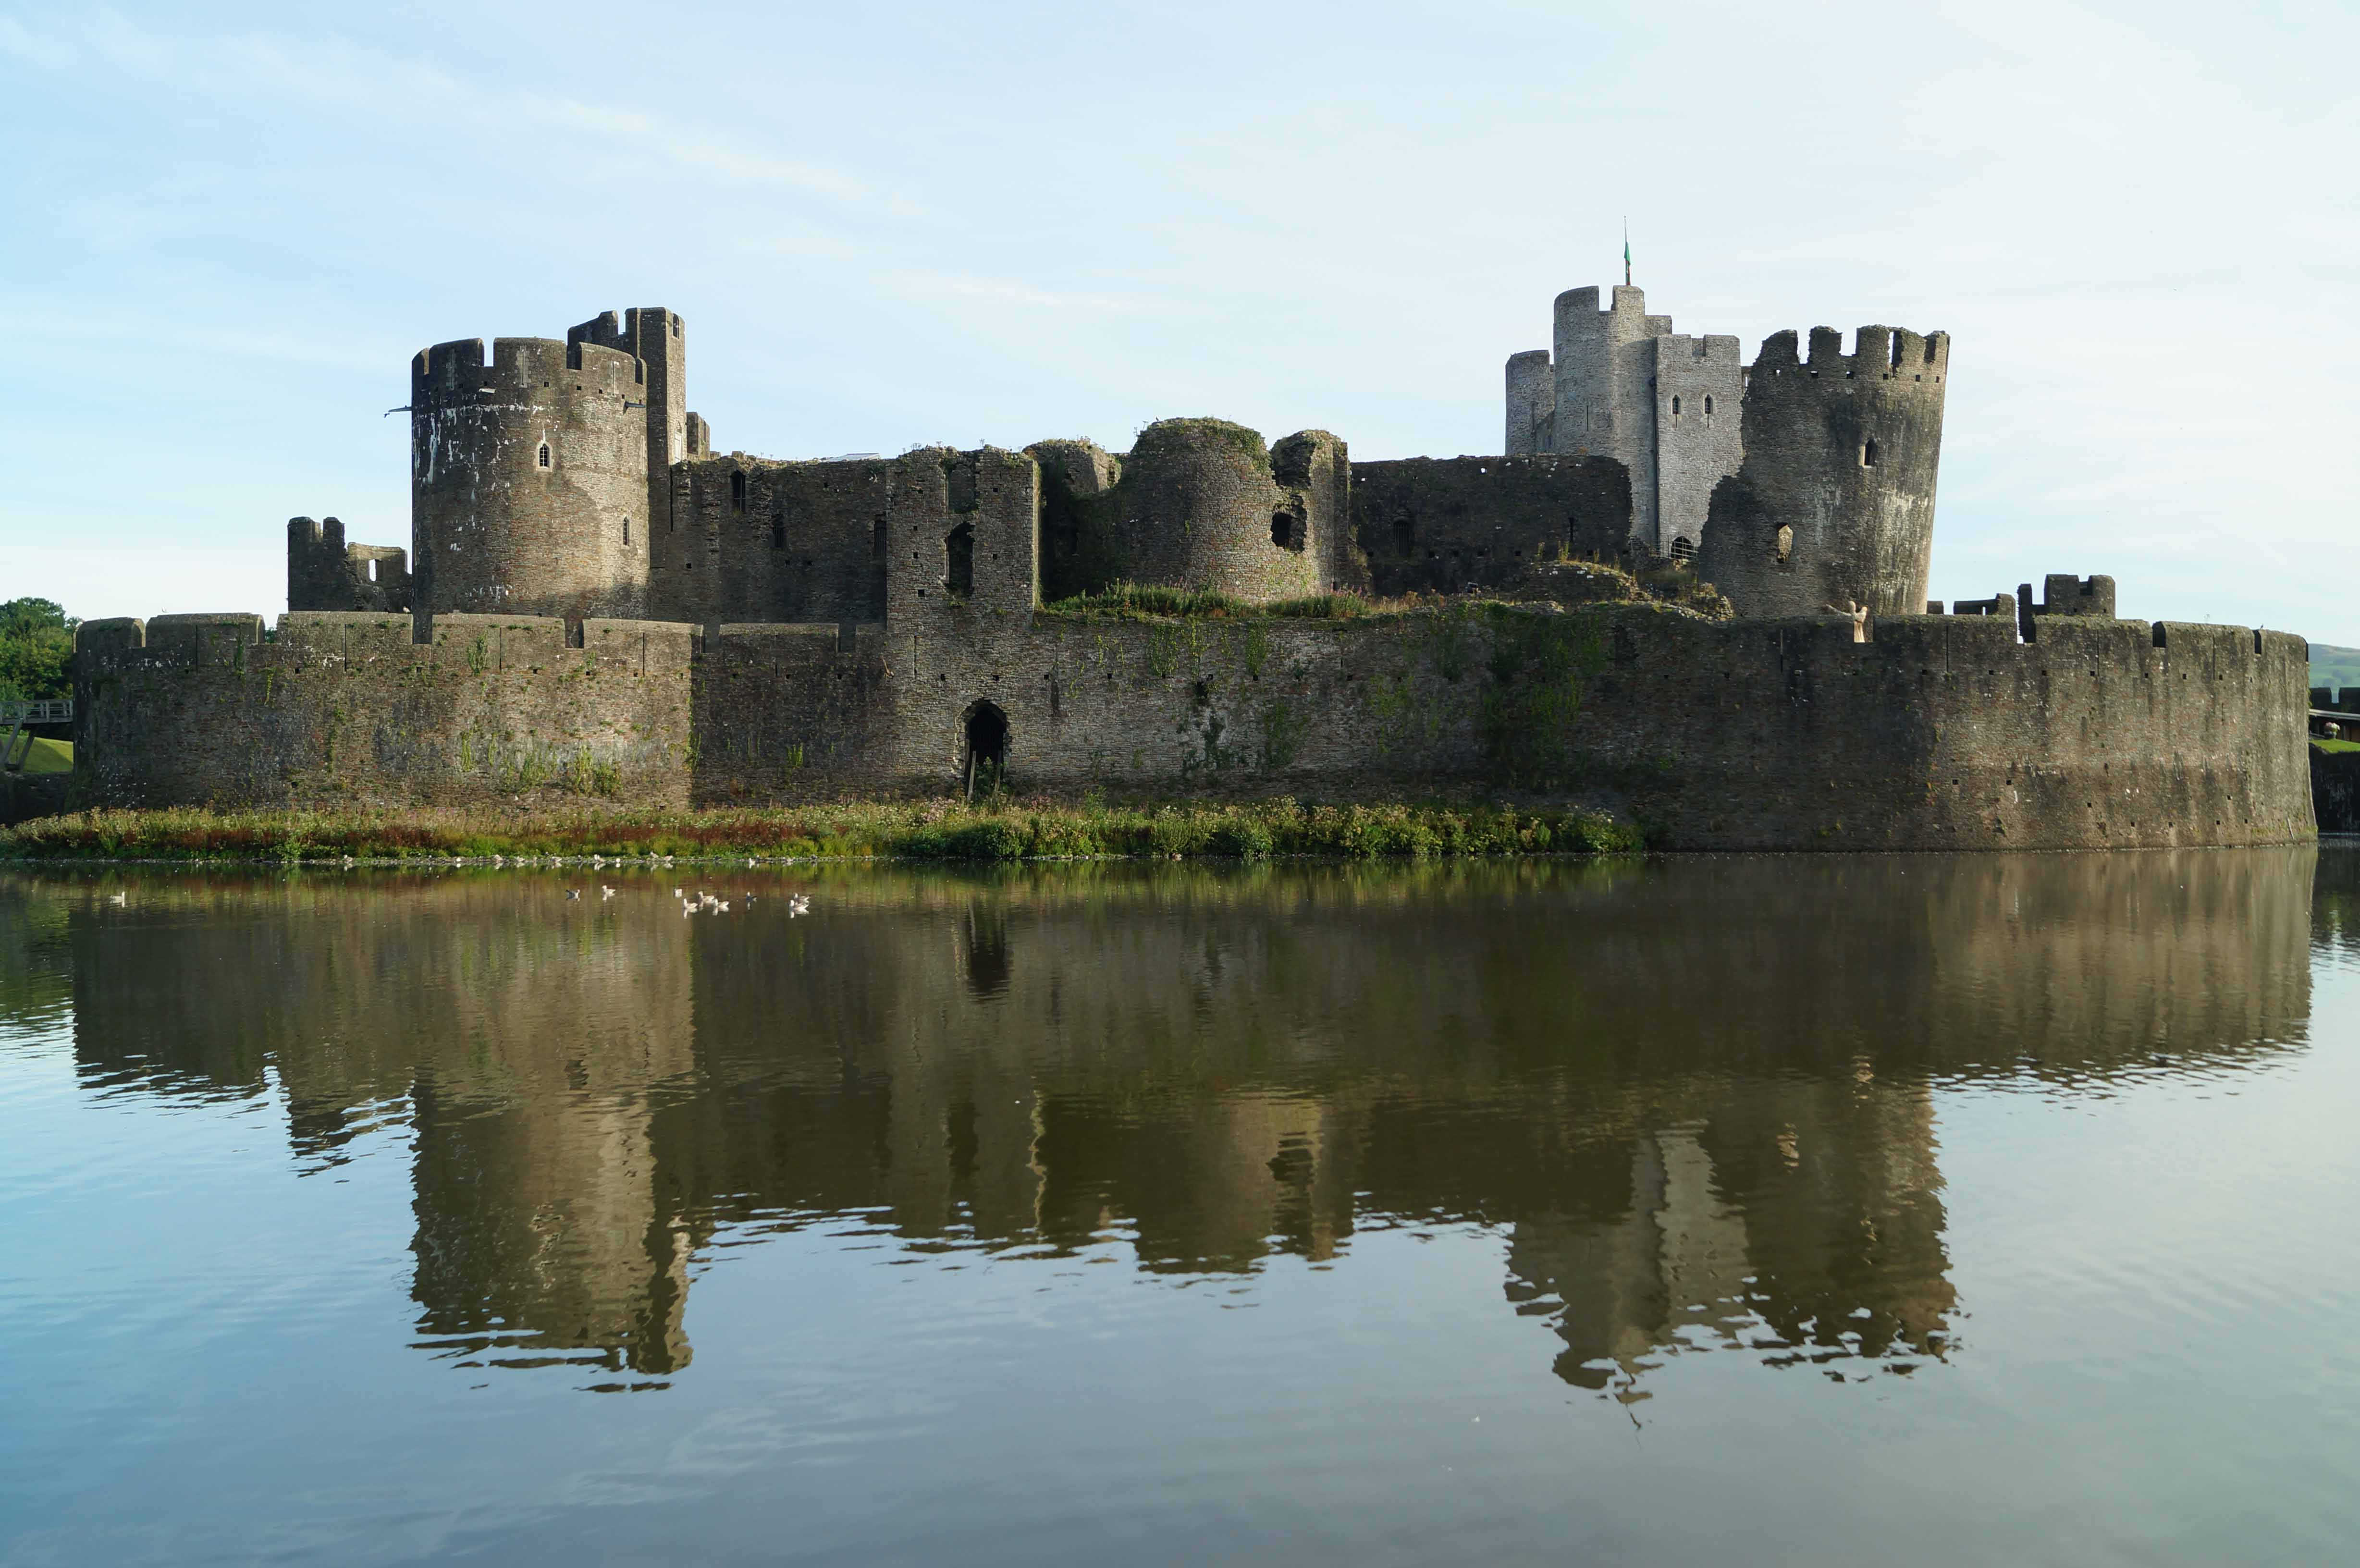 Caerphilly Castle South Wales, Caerphilly Castle   South Wales   Castles, Forts and Battles